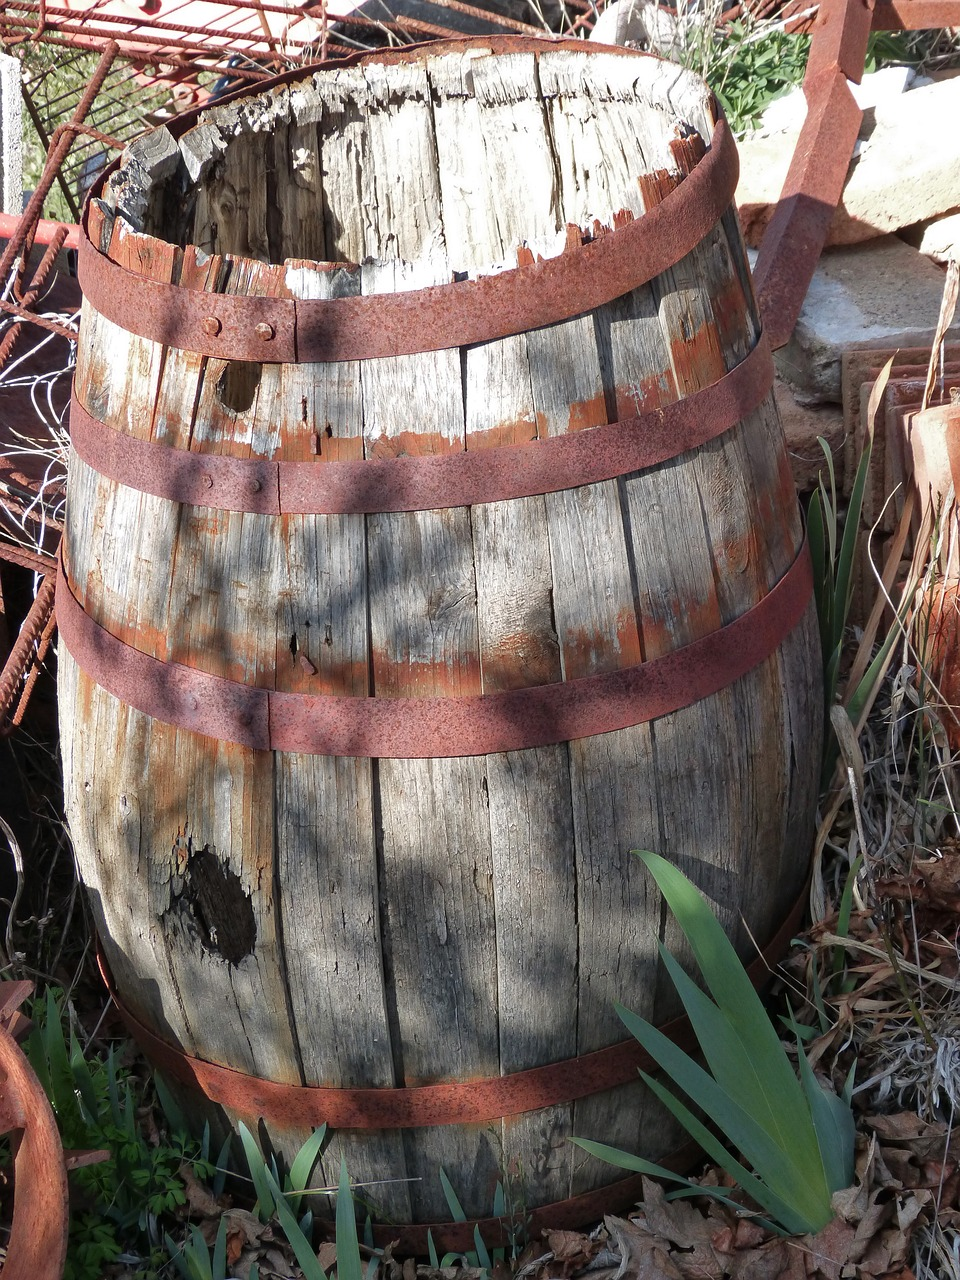 cask viticulture old free photo